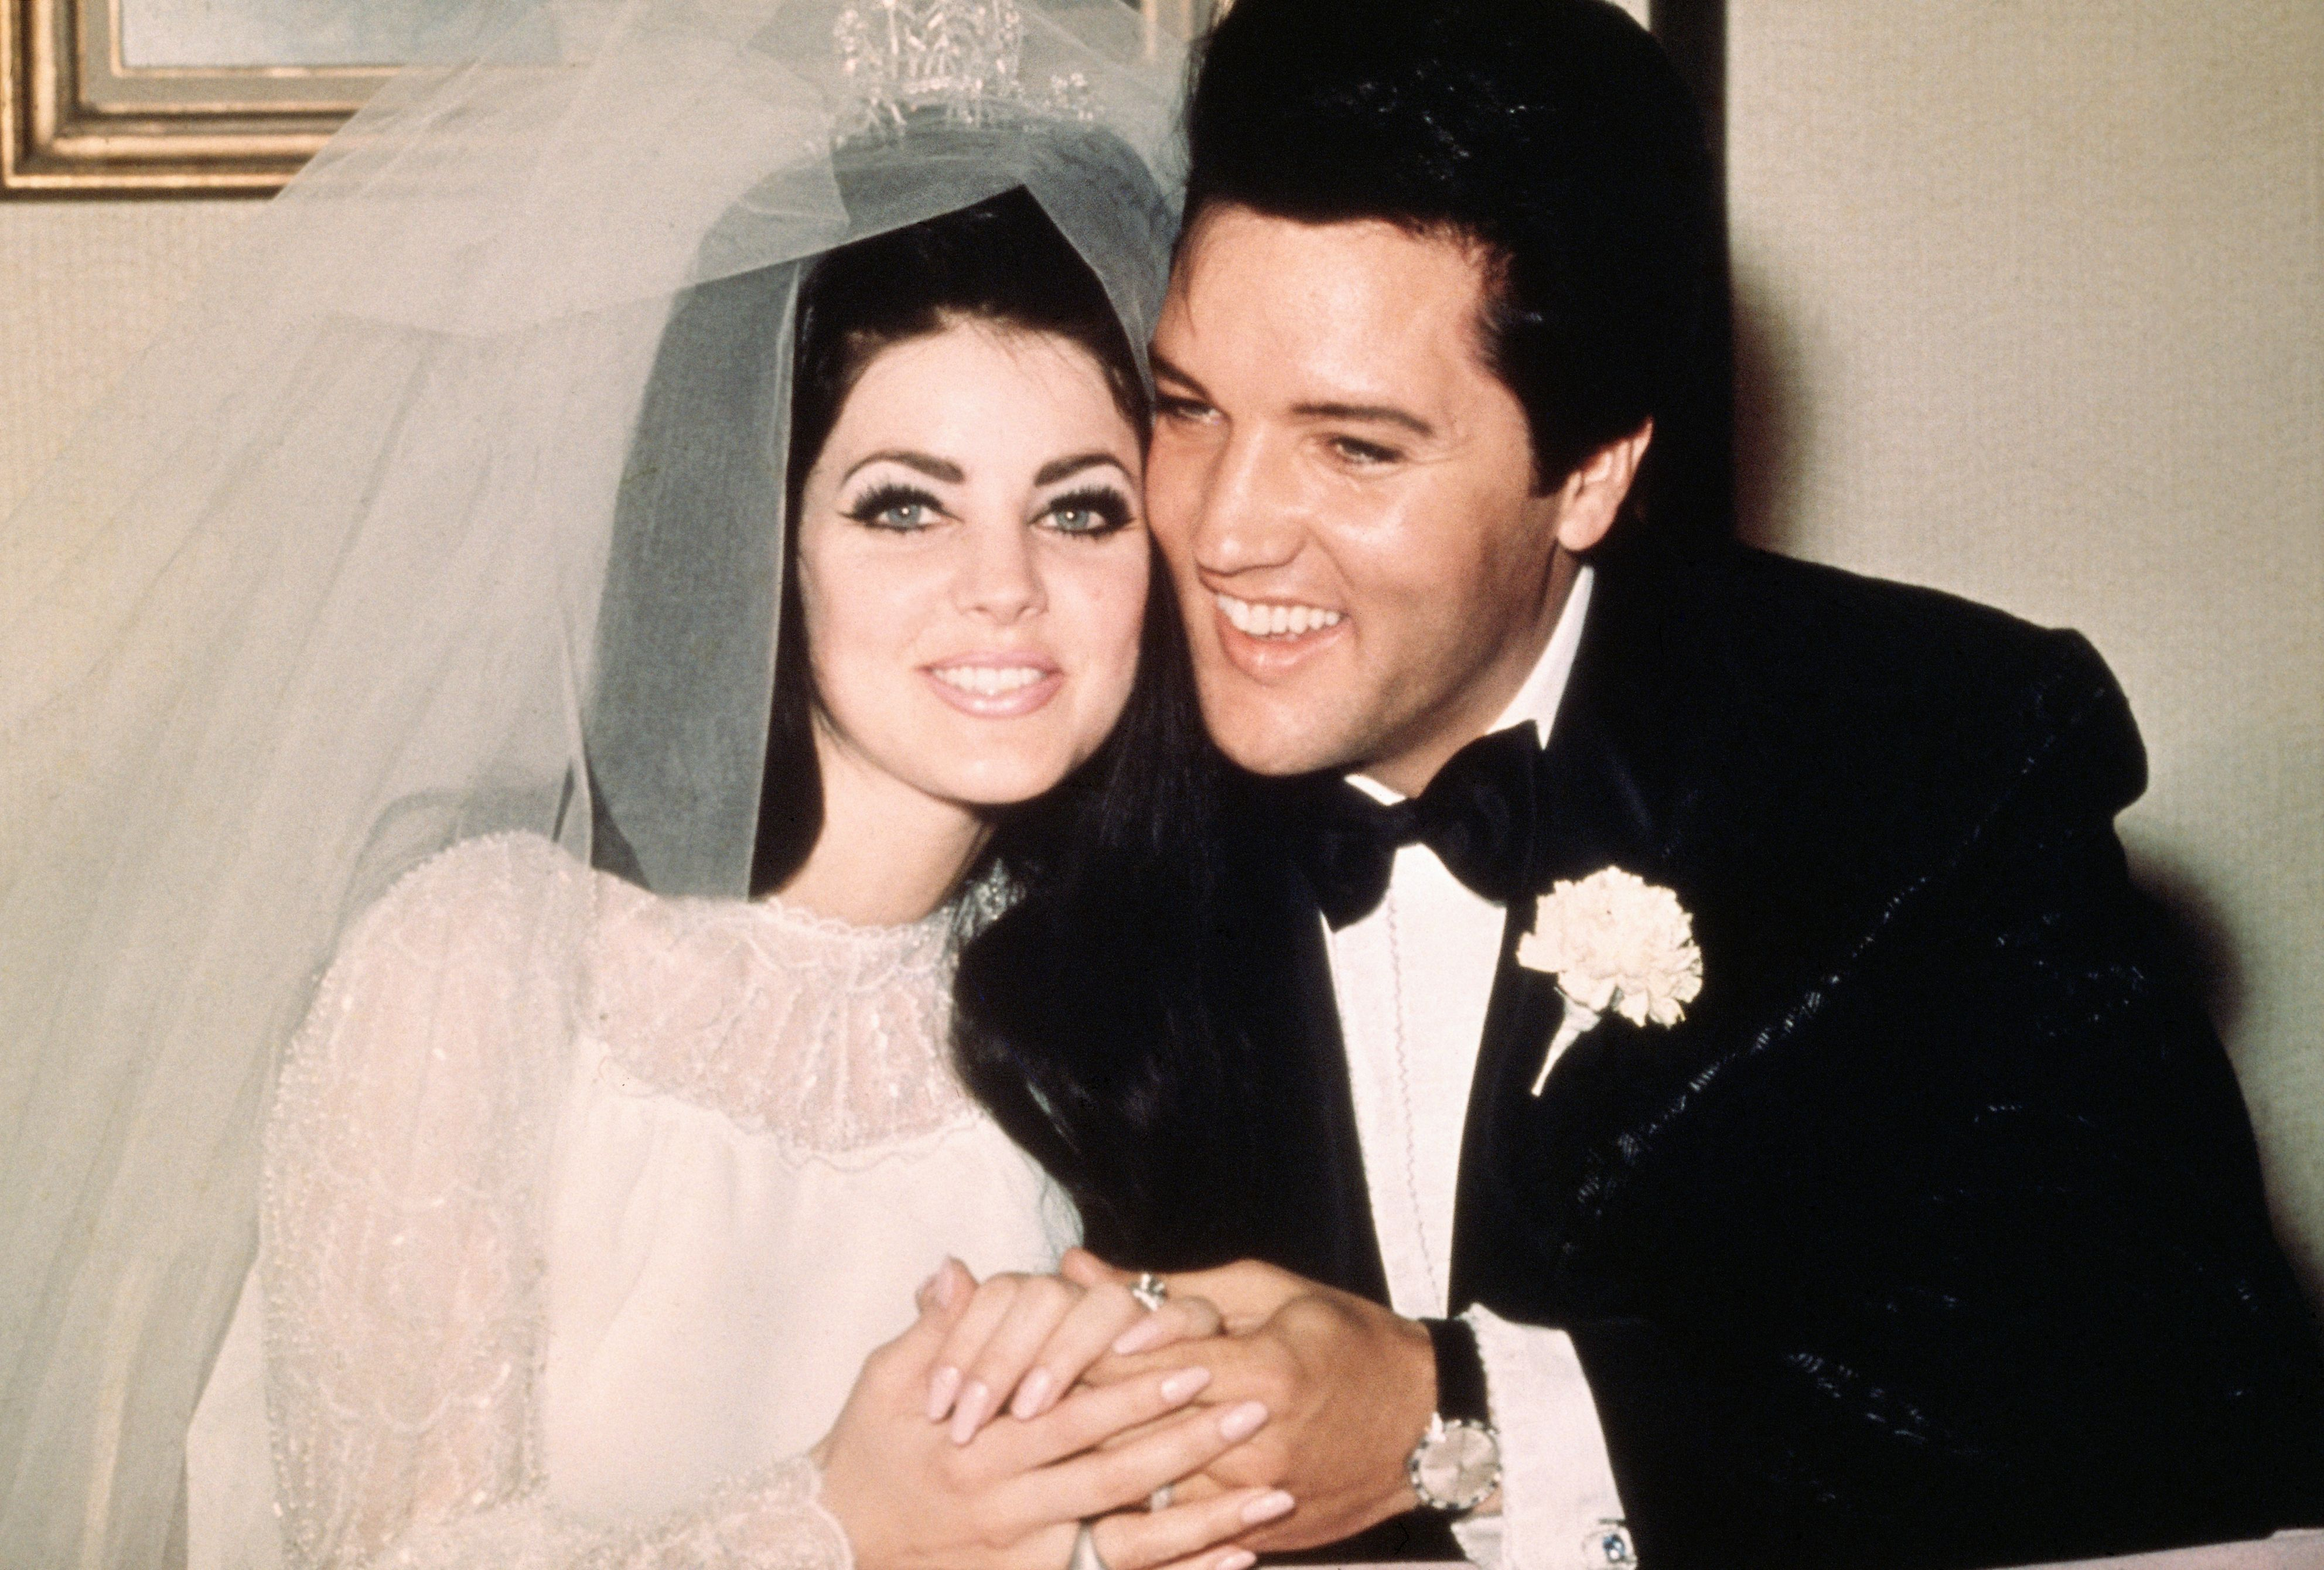 Elvis Presley with Priscilla Presley following their wedding on May 1, 1967 | Photo: Getty Images